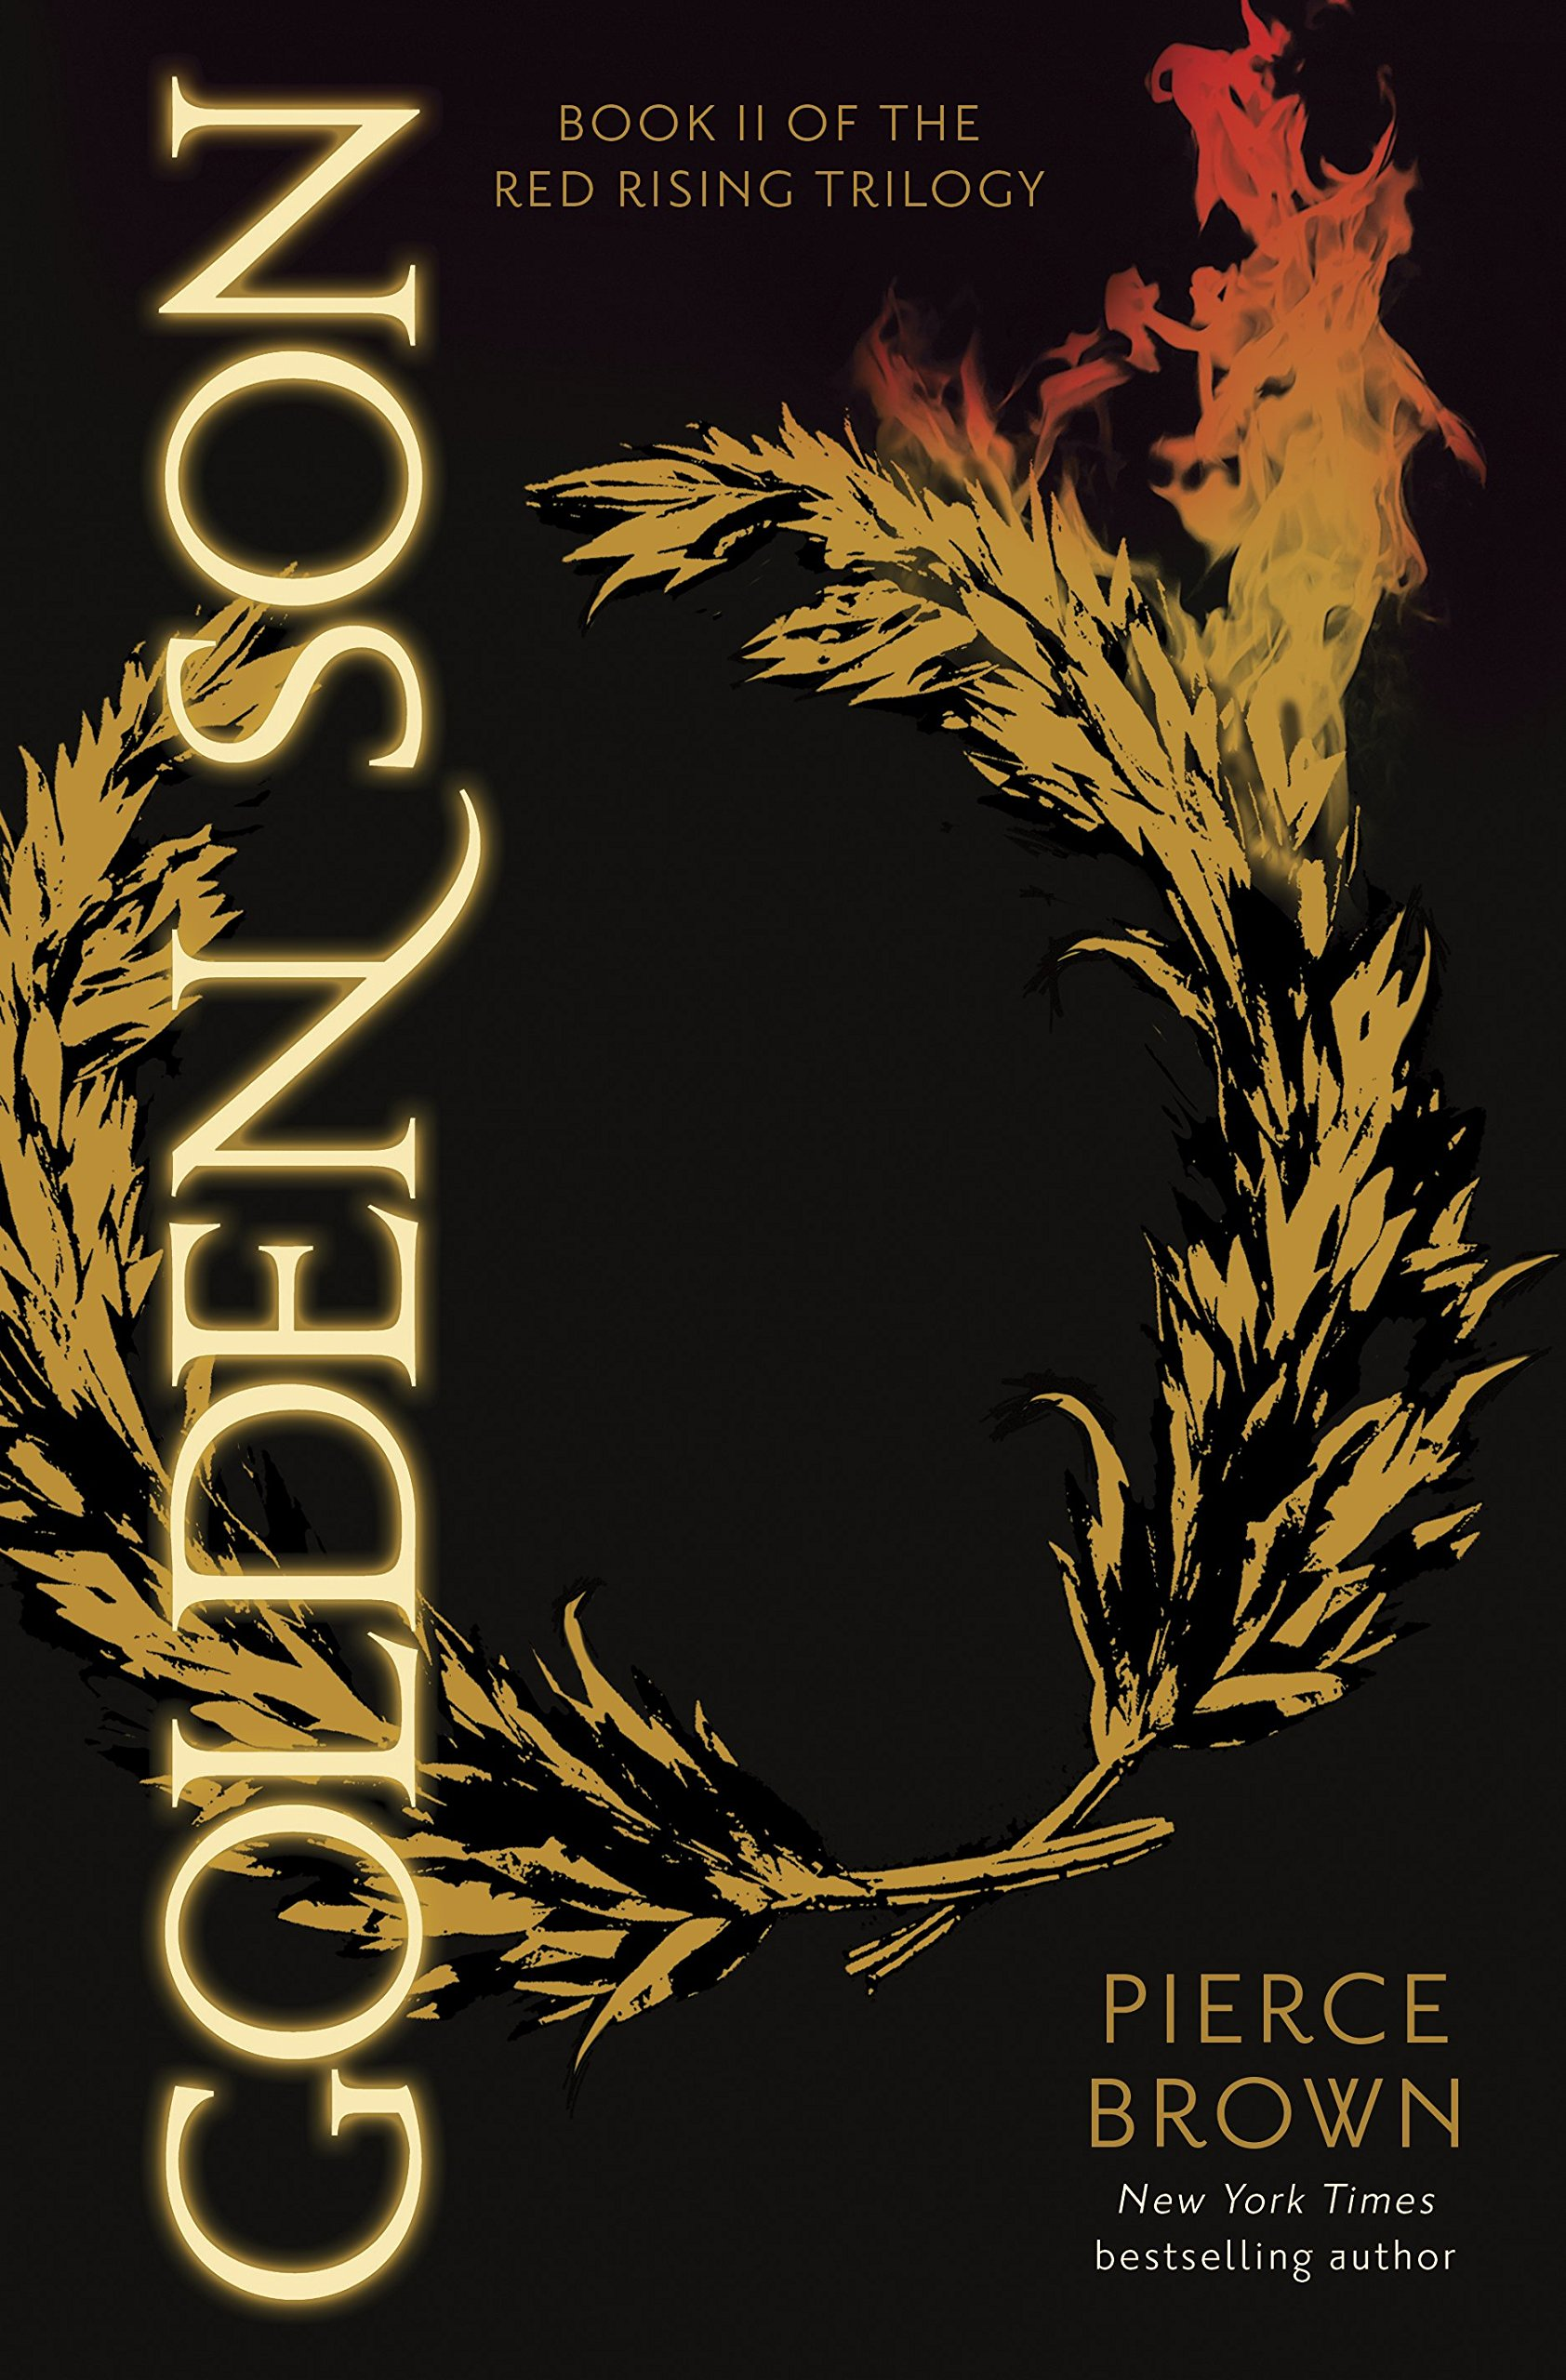 'Golden Son' by Pierce Brown (reviewed by Skuldren)